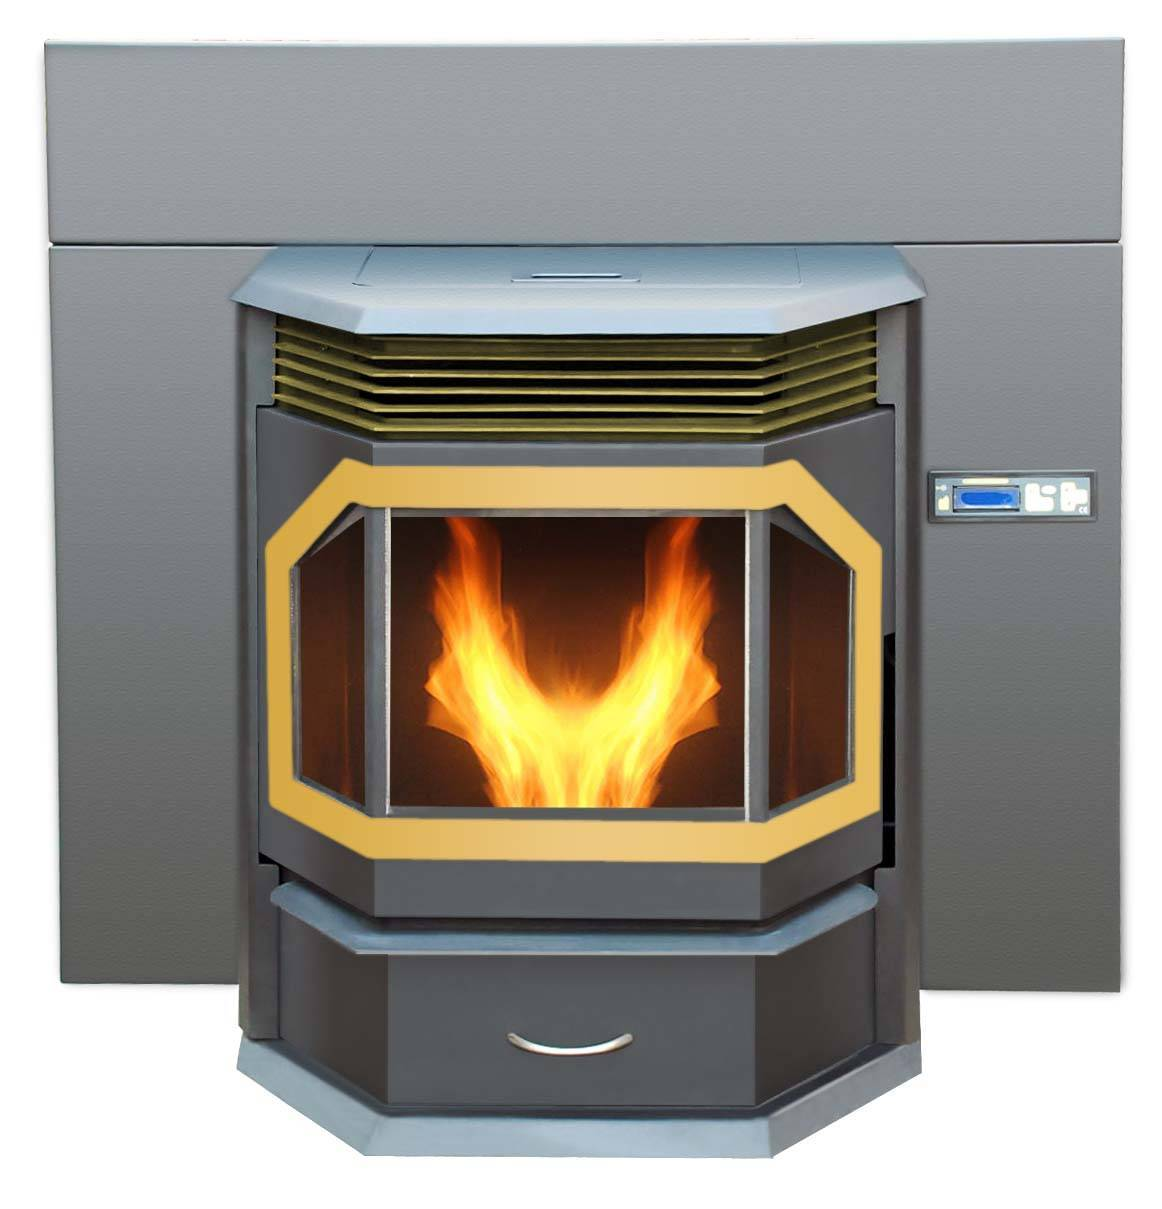 wood pellet stove nb pa insert manufacturer supplier exporter ecplaza. Black Bedroom Furniture Sets. Home Design Ideas